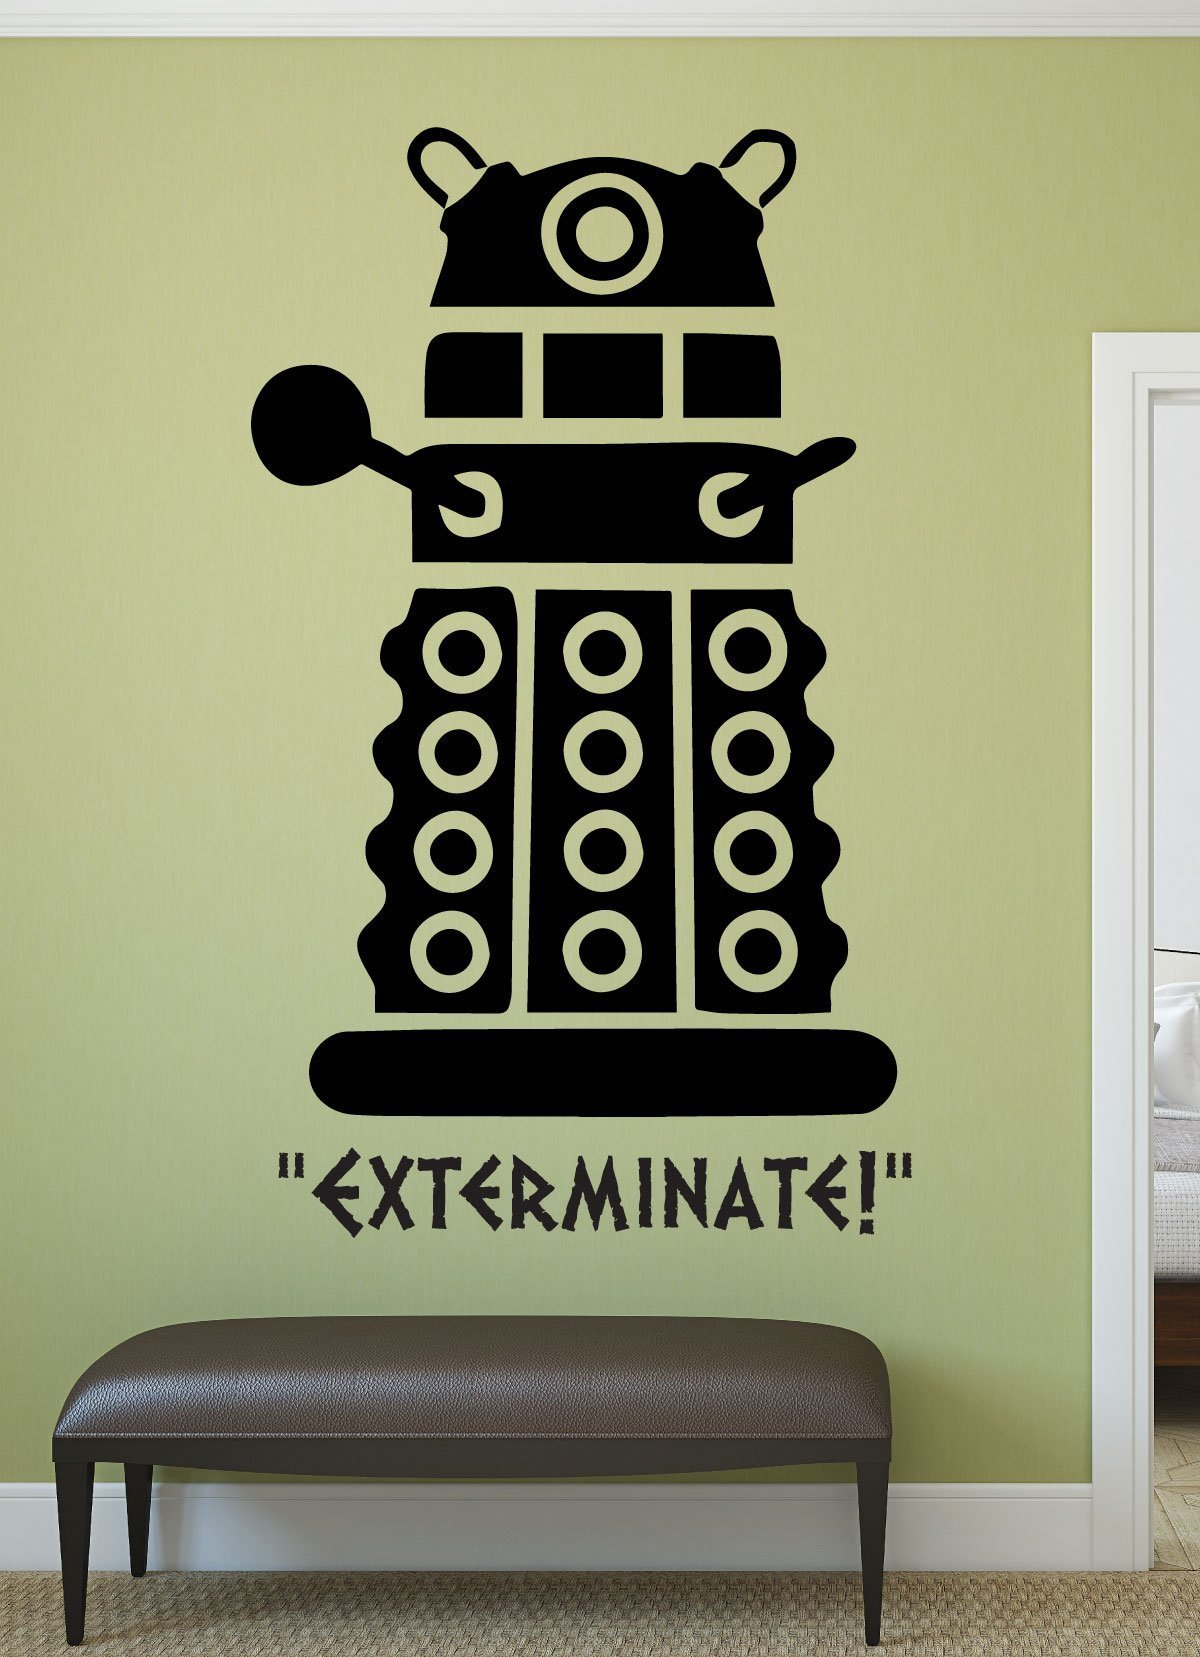 Doctor Who Decal - Dalek - Whovian Gifts, Doctor Who Wall Art, Vinyl ...